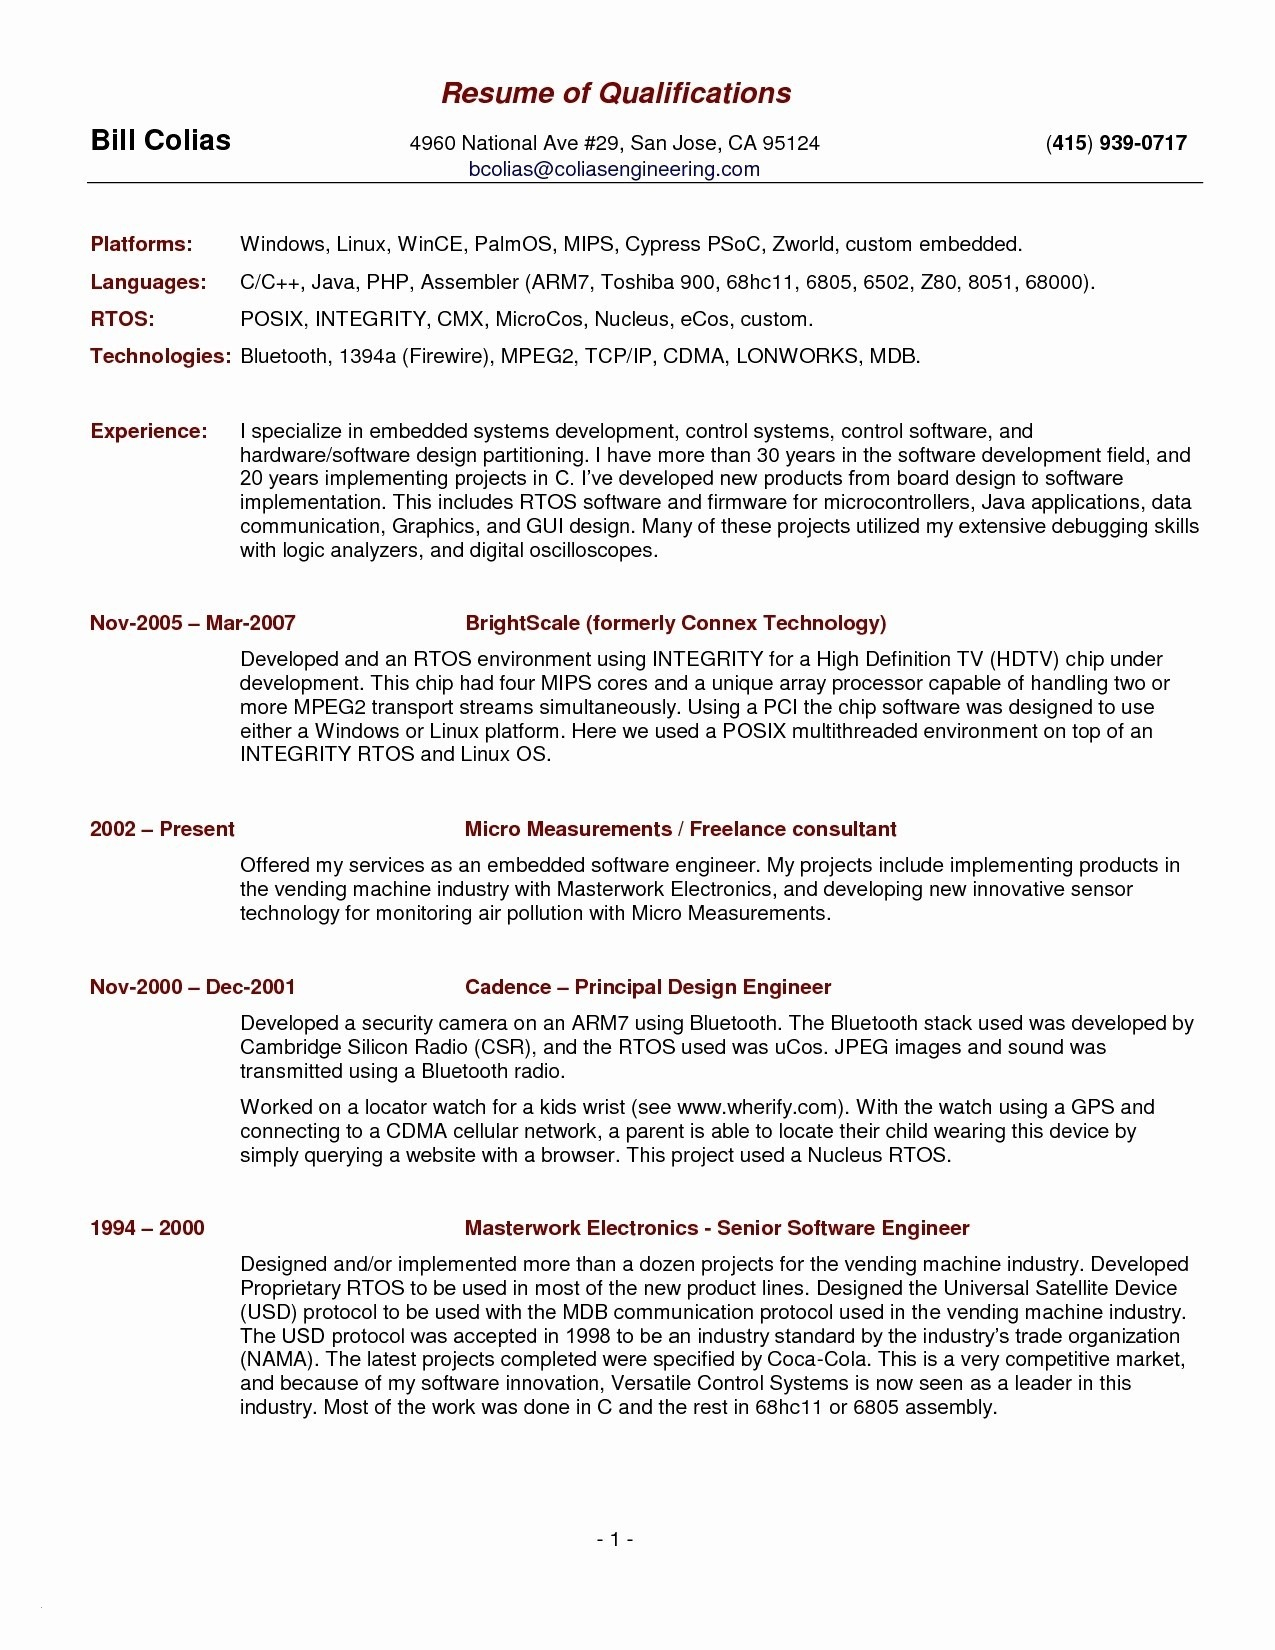 Software Engineer Resume Template - Resume Templates Pdf Free Inspirational Lovely Pr Resume Template